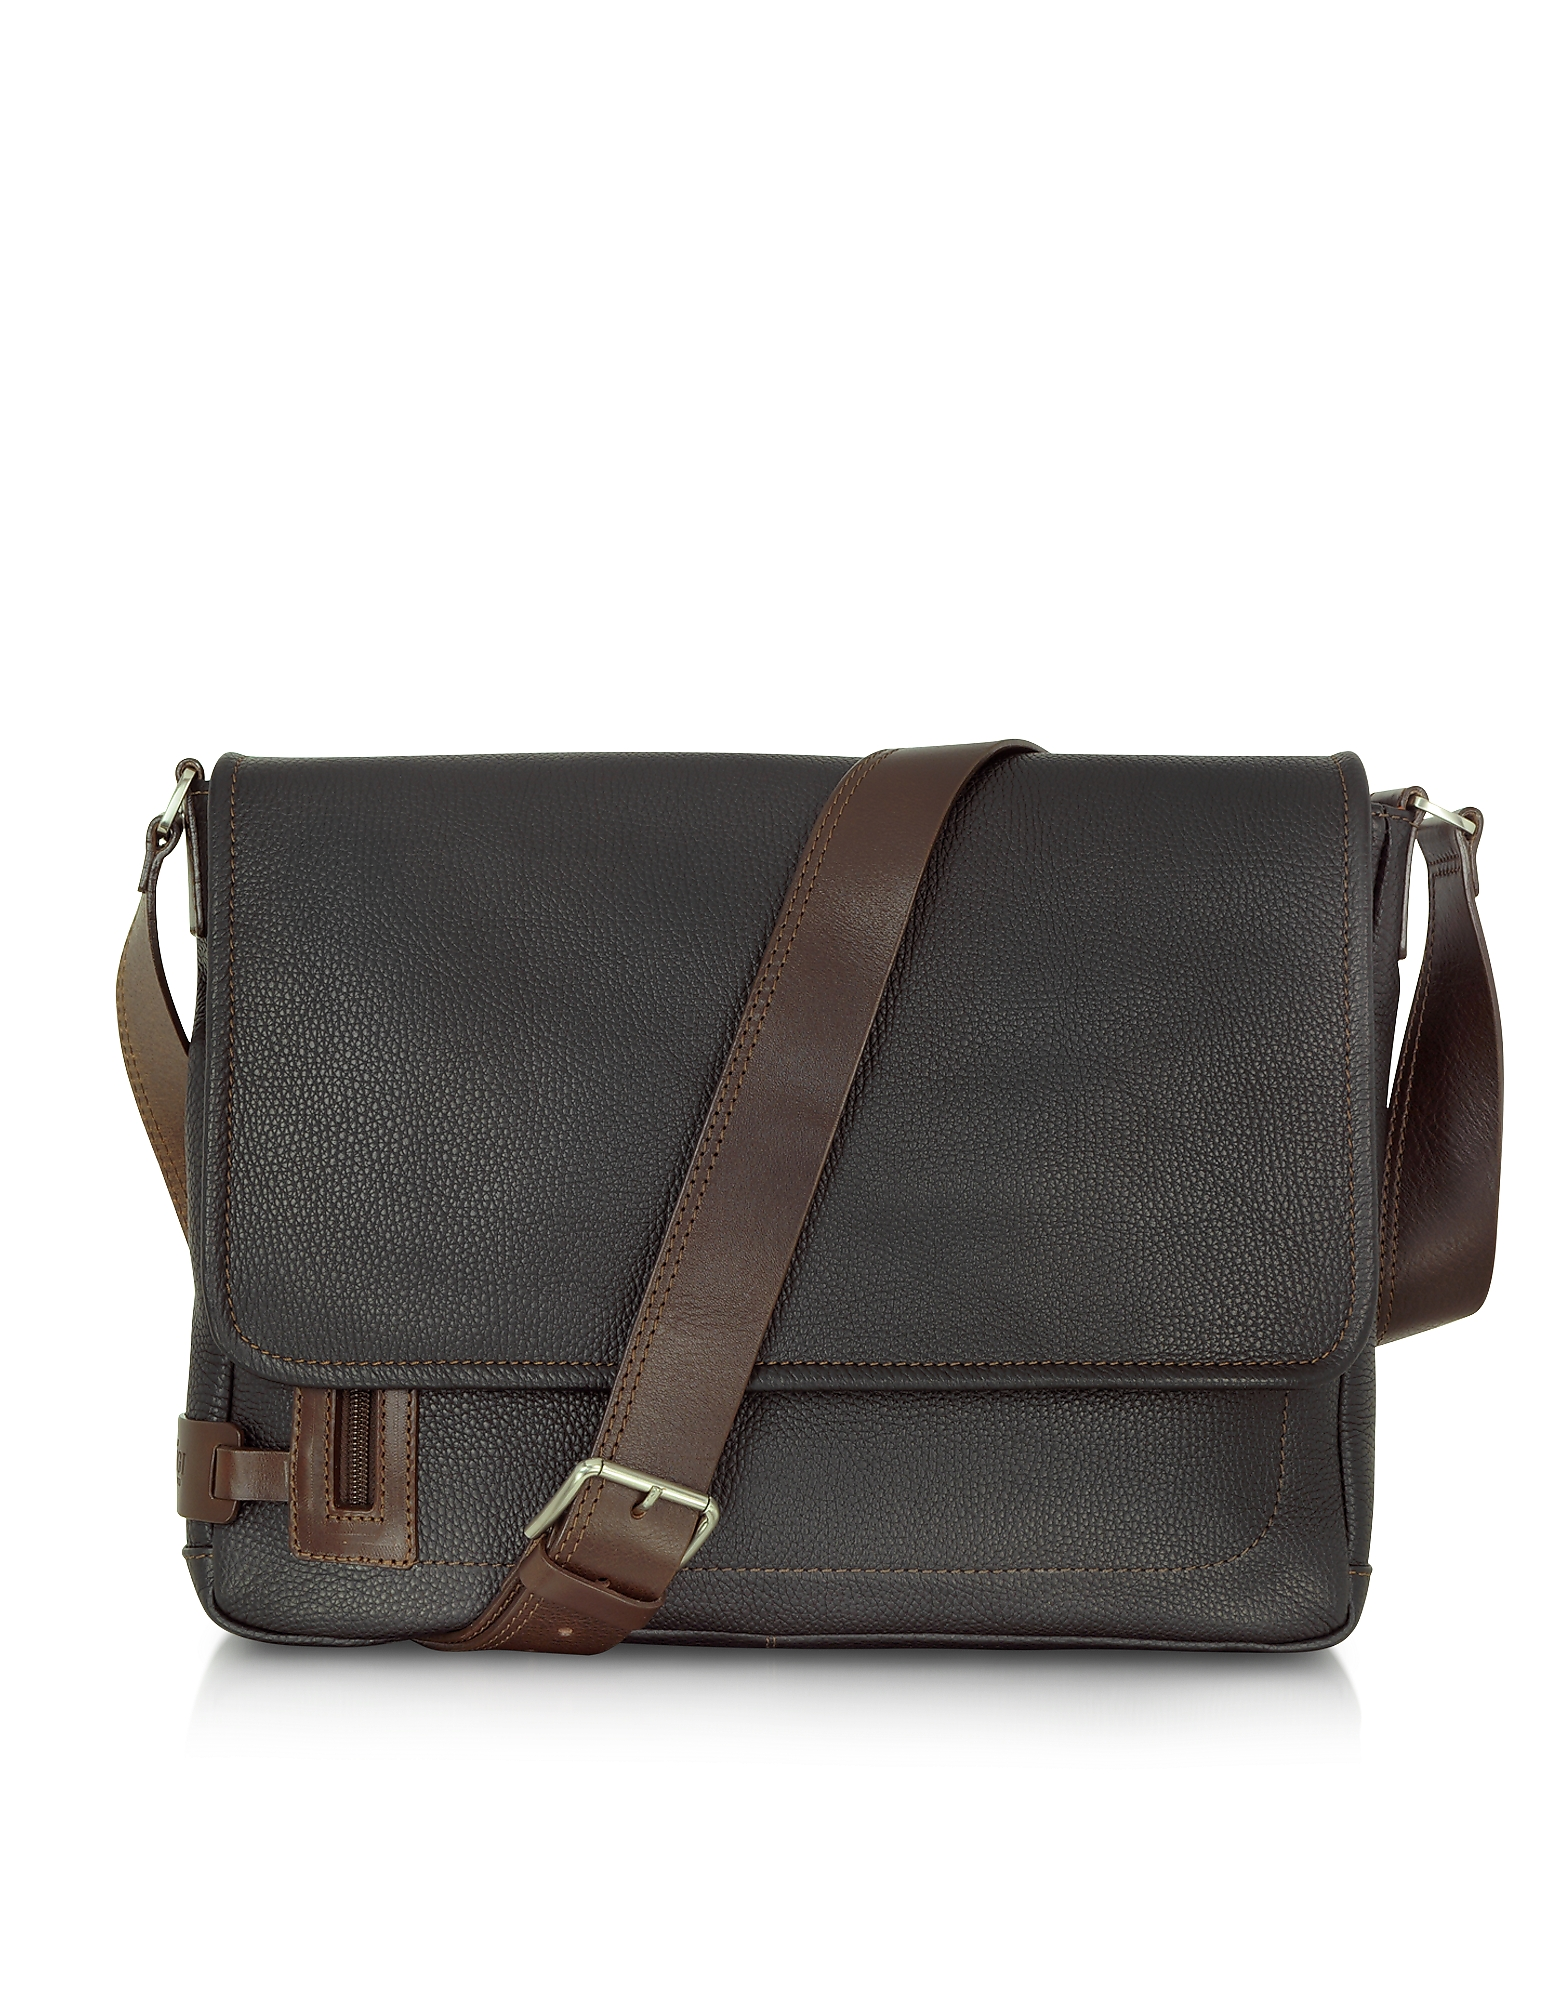 Chiarugi Travel Bags, Black Leather Messenger Bag